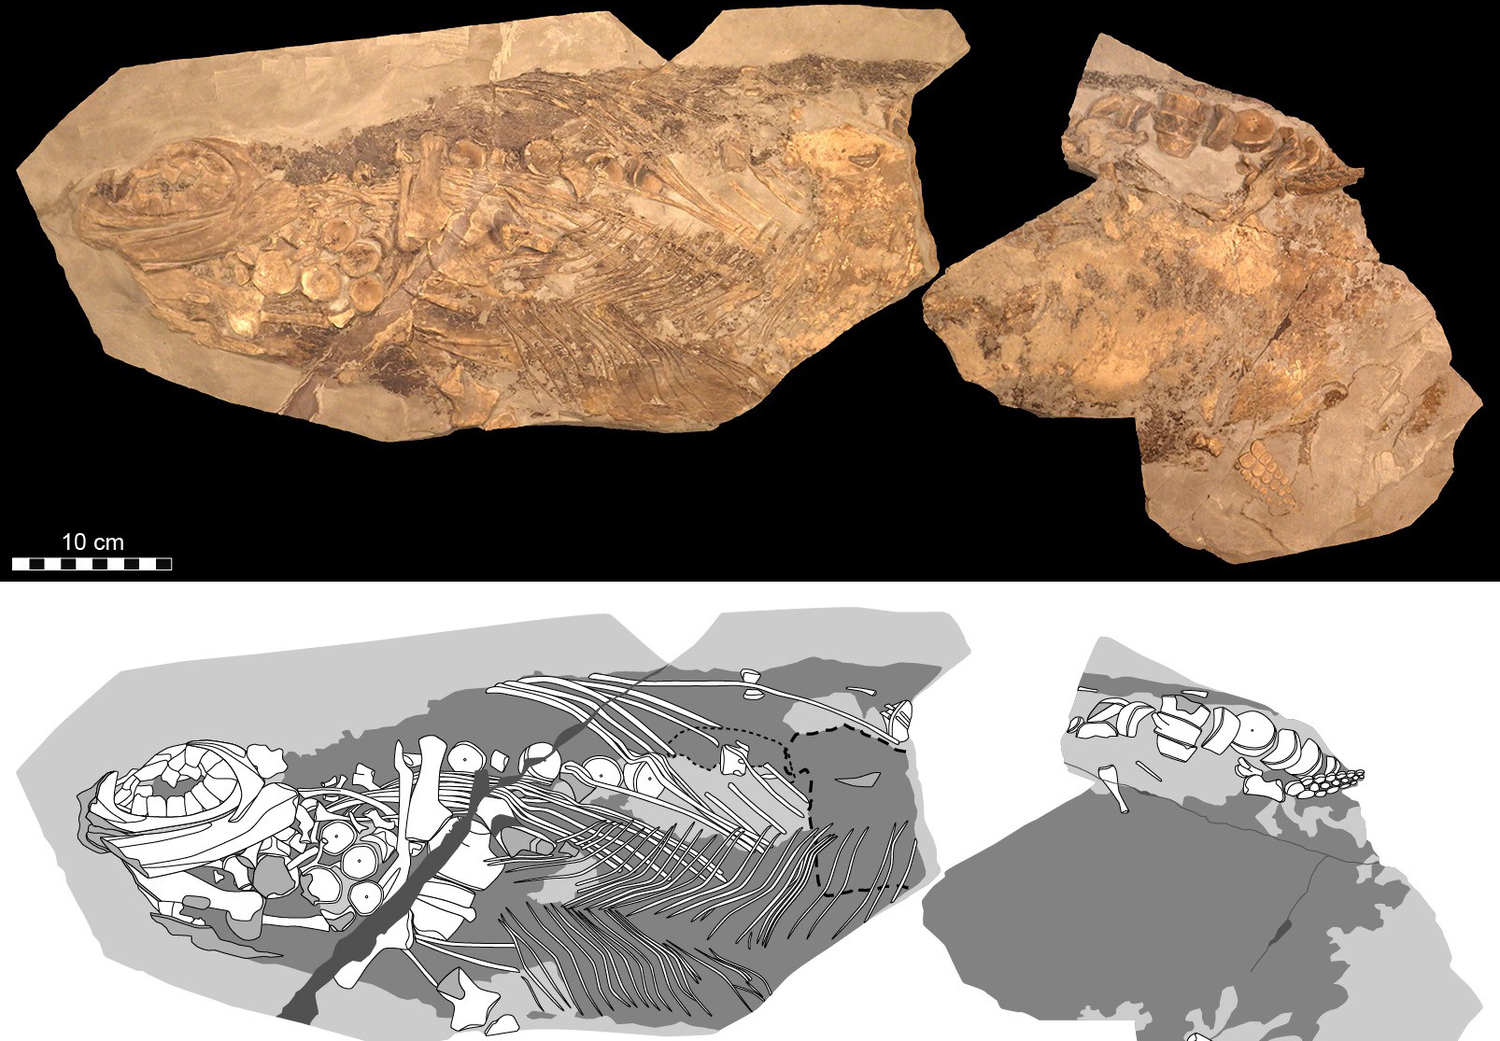 Spectacular soft-tissue fossil (MH 432; Urweltmuseum Hauff, Holzmaden, Germany). Cells, cellular organelles and original biomolecules have been discovered in preserved soft parts of an approximately 180-million-year-old ichthyosaur (literally 'fish-lizard'). Photographic (top) and diagrammatic (bottom) representation of the 85-cm-long fossil (which corresponds to roughly half of the original length of the animal). Courtesy of Johan Lindgren.